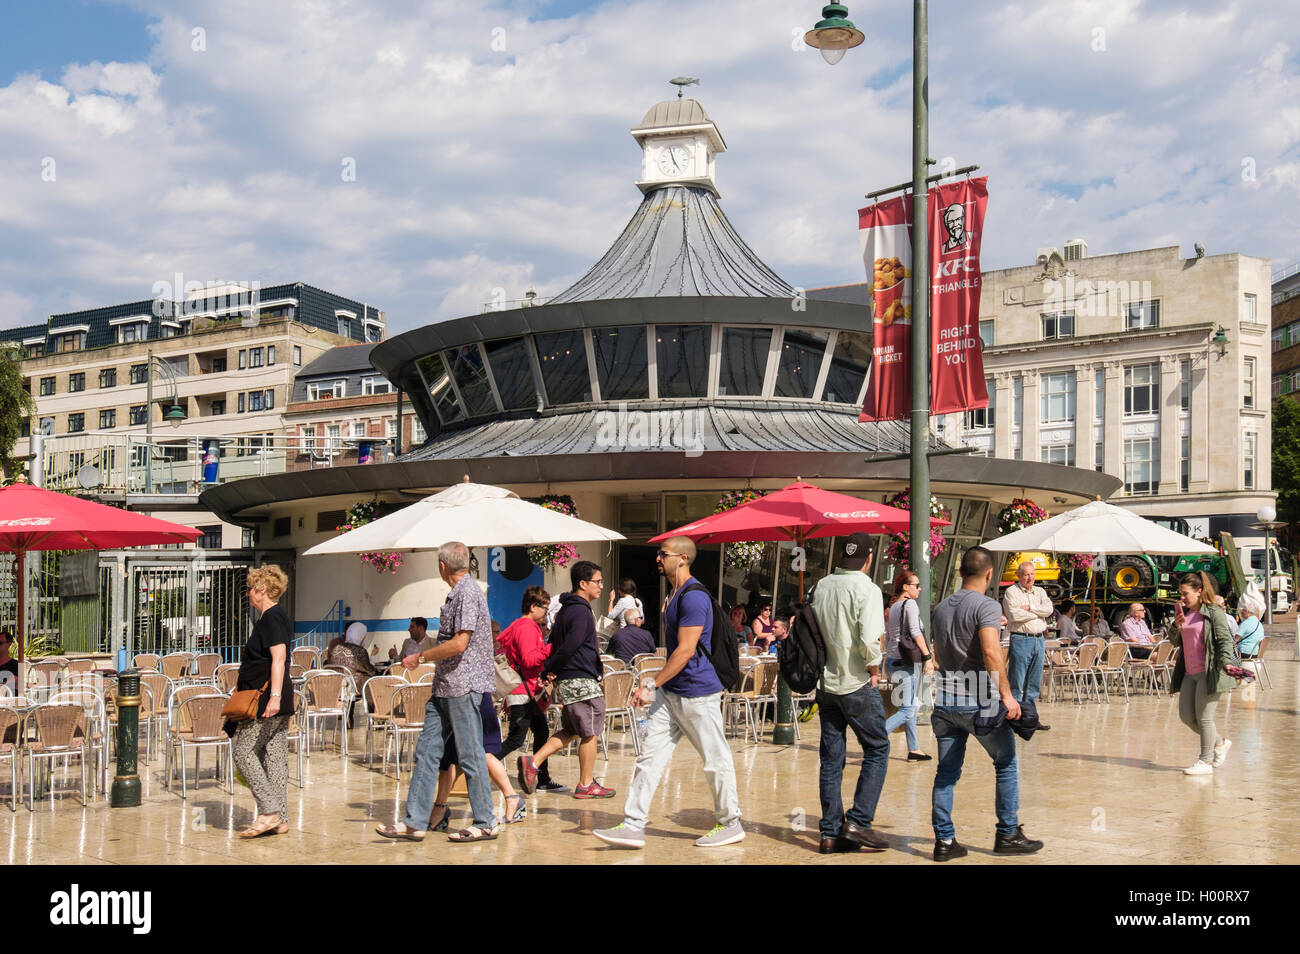 Busy street scene outside with people rushing past The Obscura Cafe in The Square, Bournemouth, Dorset, England, - Stock Image